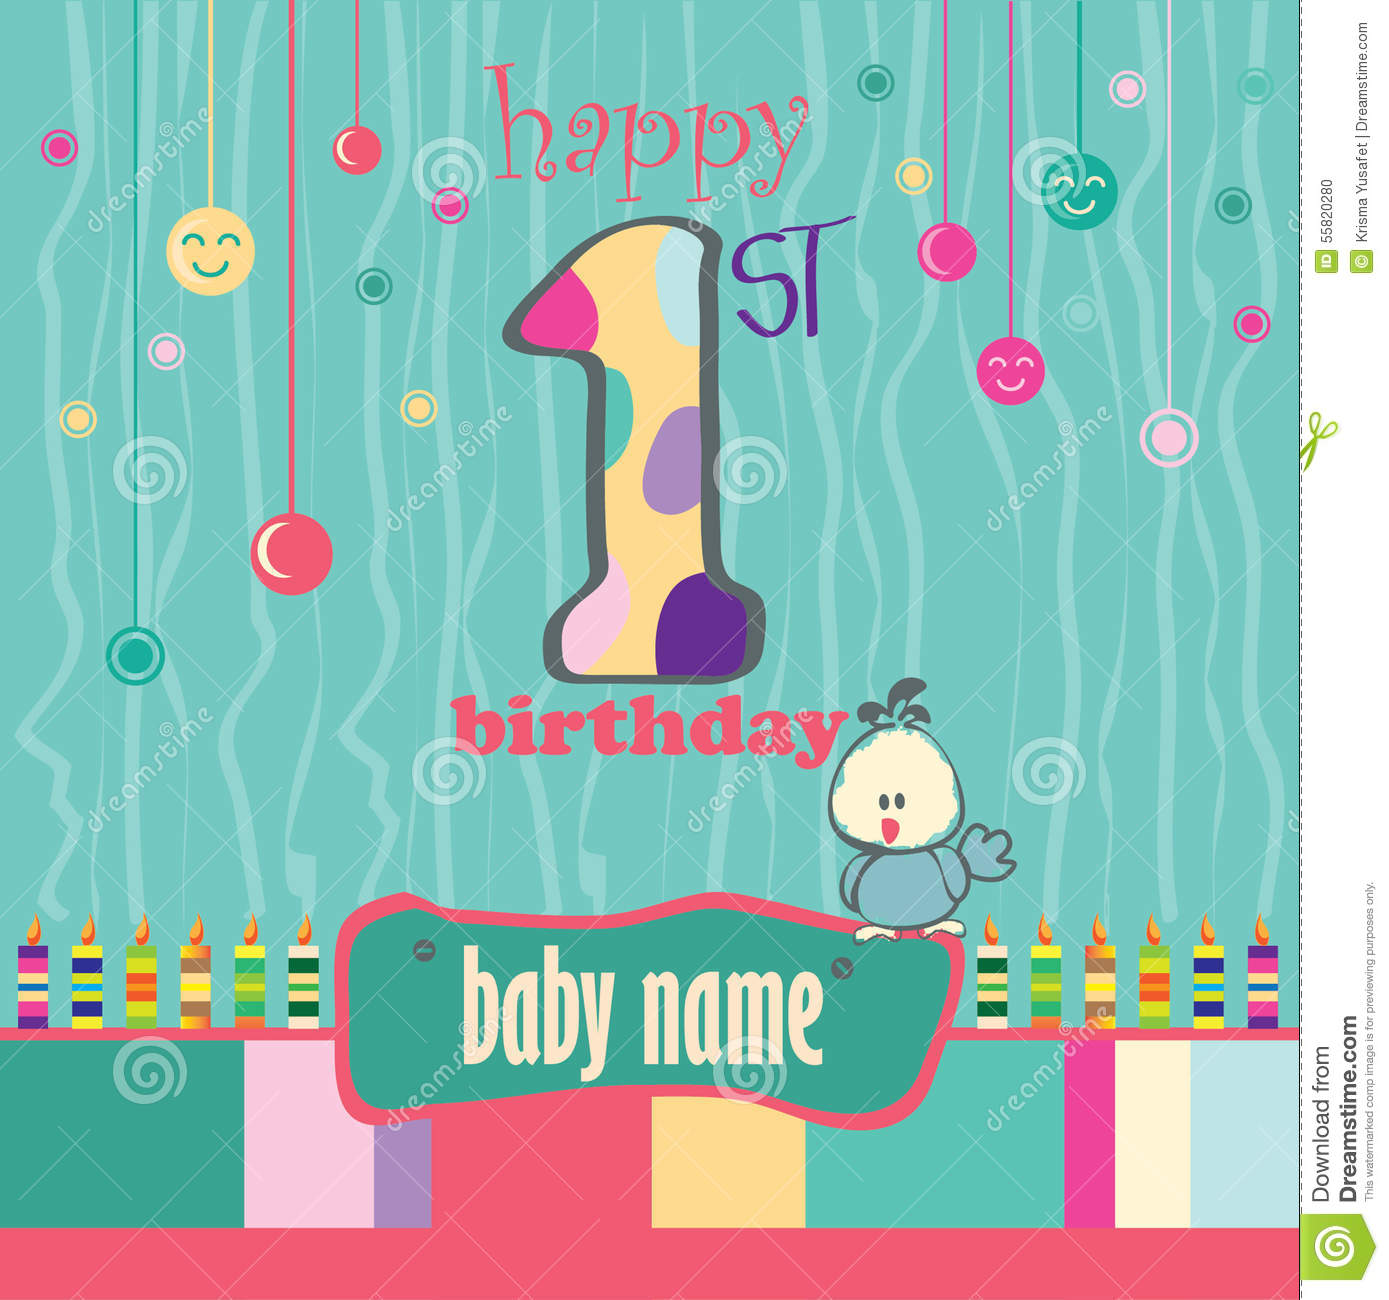 1st Birthday Greeting Card Illustration Image 55820280 – 1st Birthday Greetings